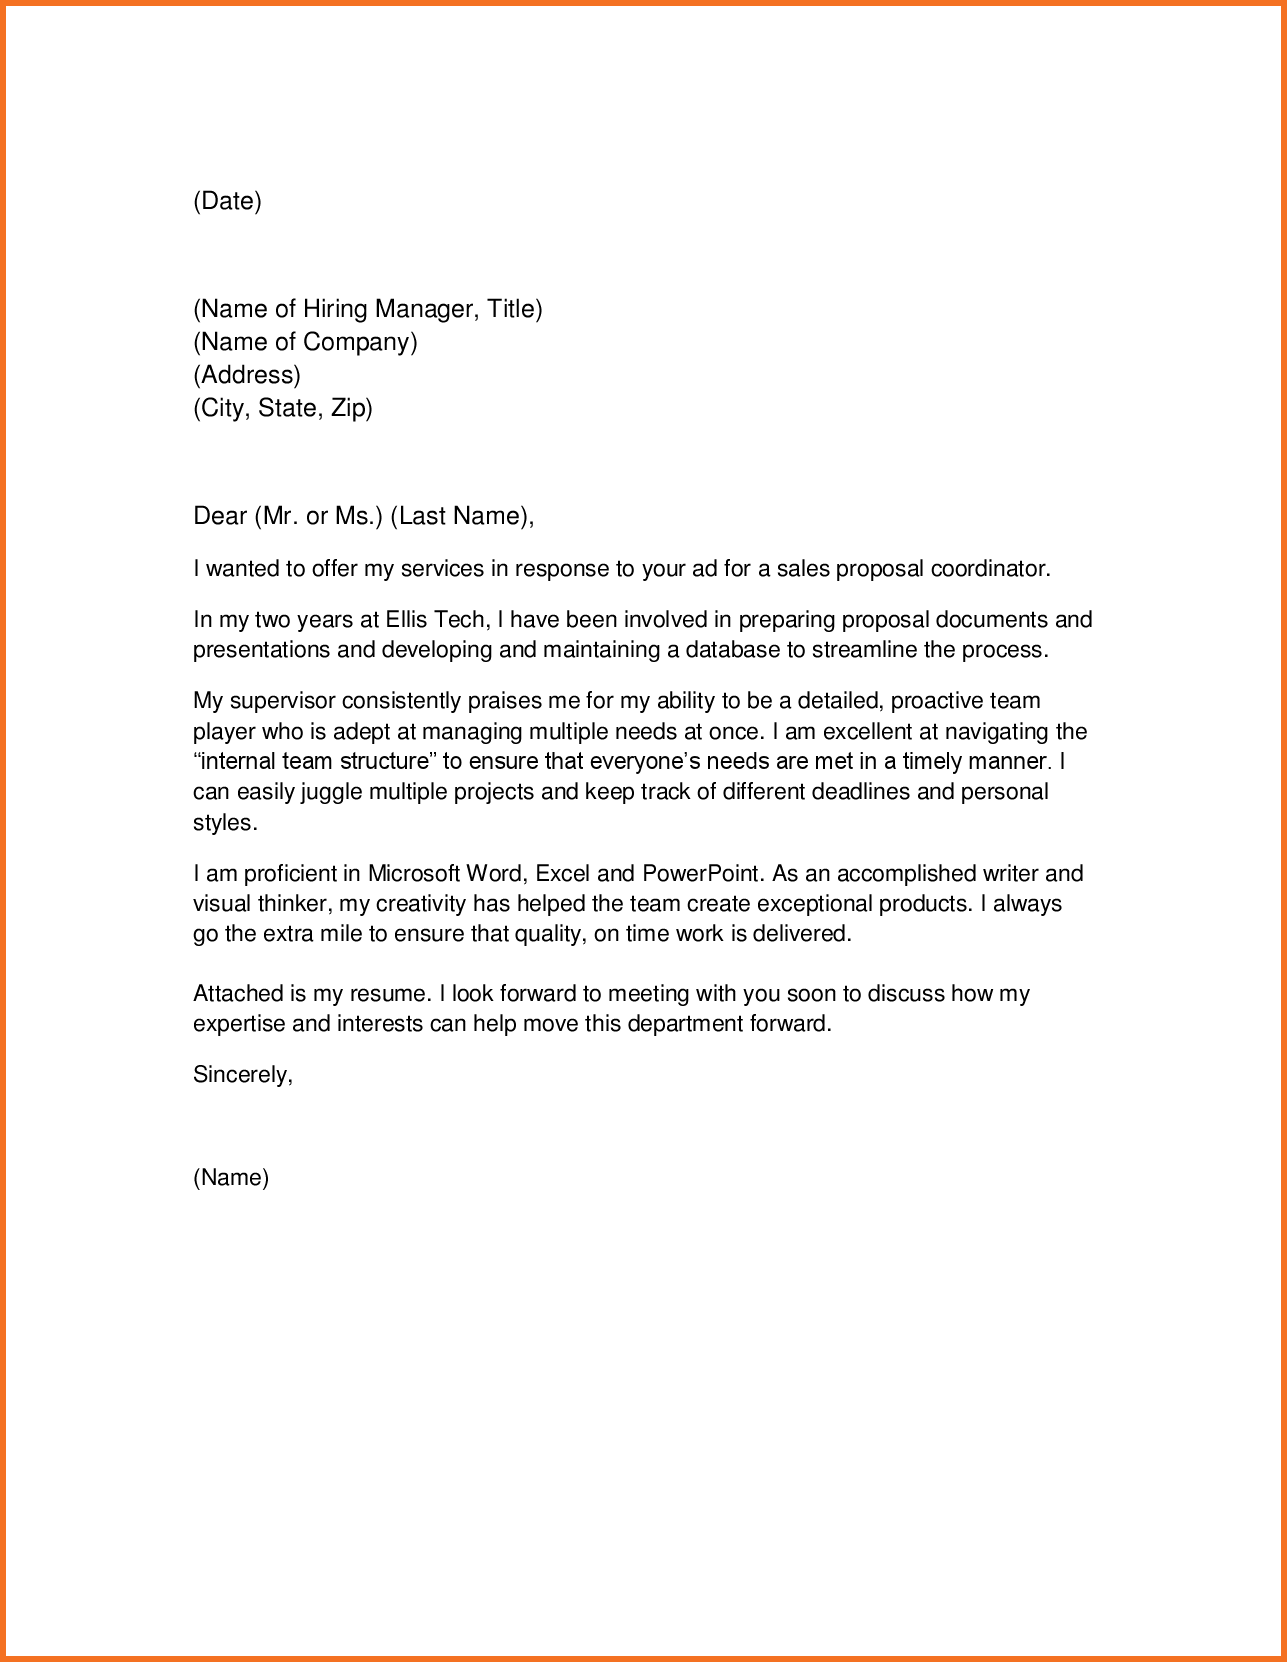 writing a letter of complaint example